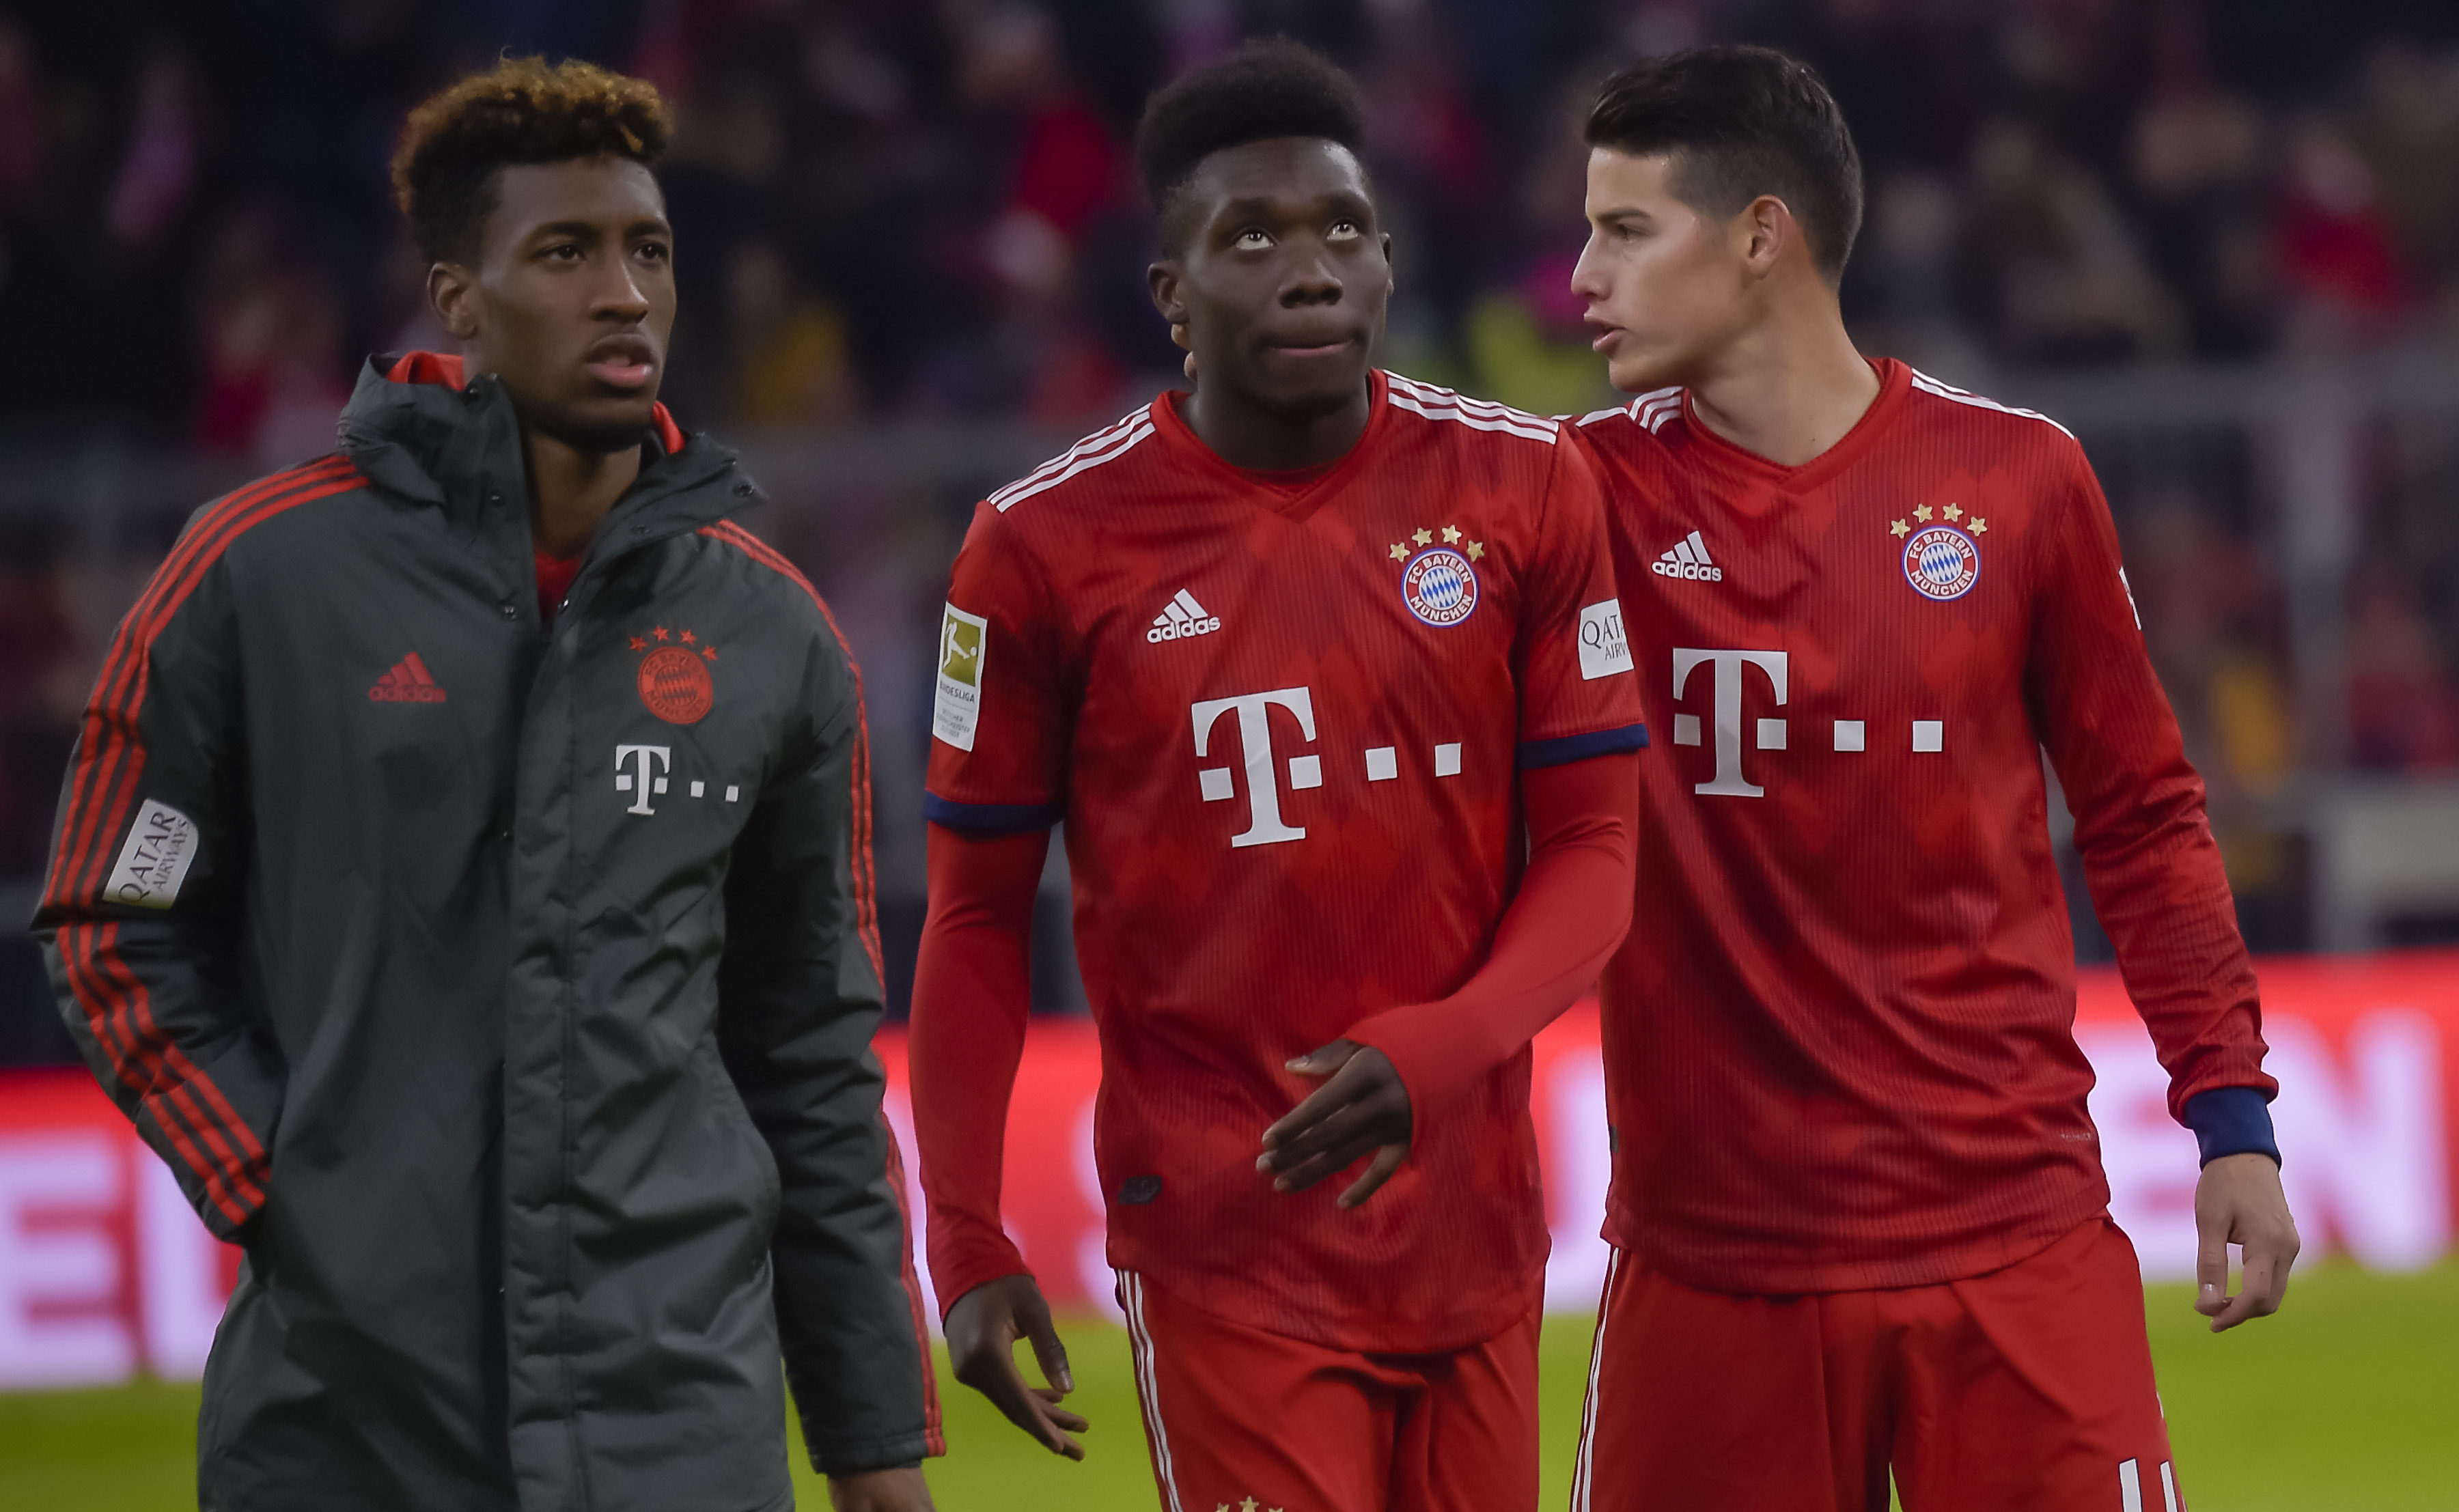 (L-R) Bayern Munich's French midfielder Kingsley Coman, Bayern Munich's Canadian midfielder Alphonso Davies and Bayern Munich's Columbian midfielder James Rodriguez are pictured during the German first division Bundesliga football match FC Bayern Munich vs VfB Stuttgart in the southern German city of Munich on January 27, 2019. (Photo by Guenter SCHIFFMANN / AFP)GUENTER SCHIFFMANN/AFP/Getty Images ** OUTS - ELSENT, FPG, CM - OUTS * NM, PH, VA if sourced by CT, LA or MoD **